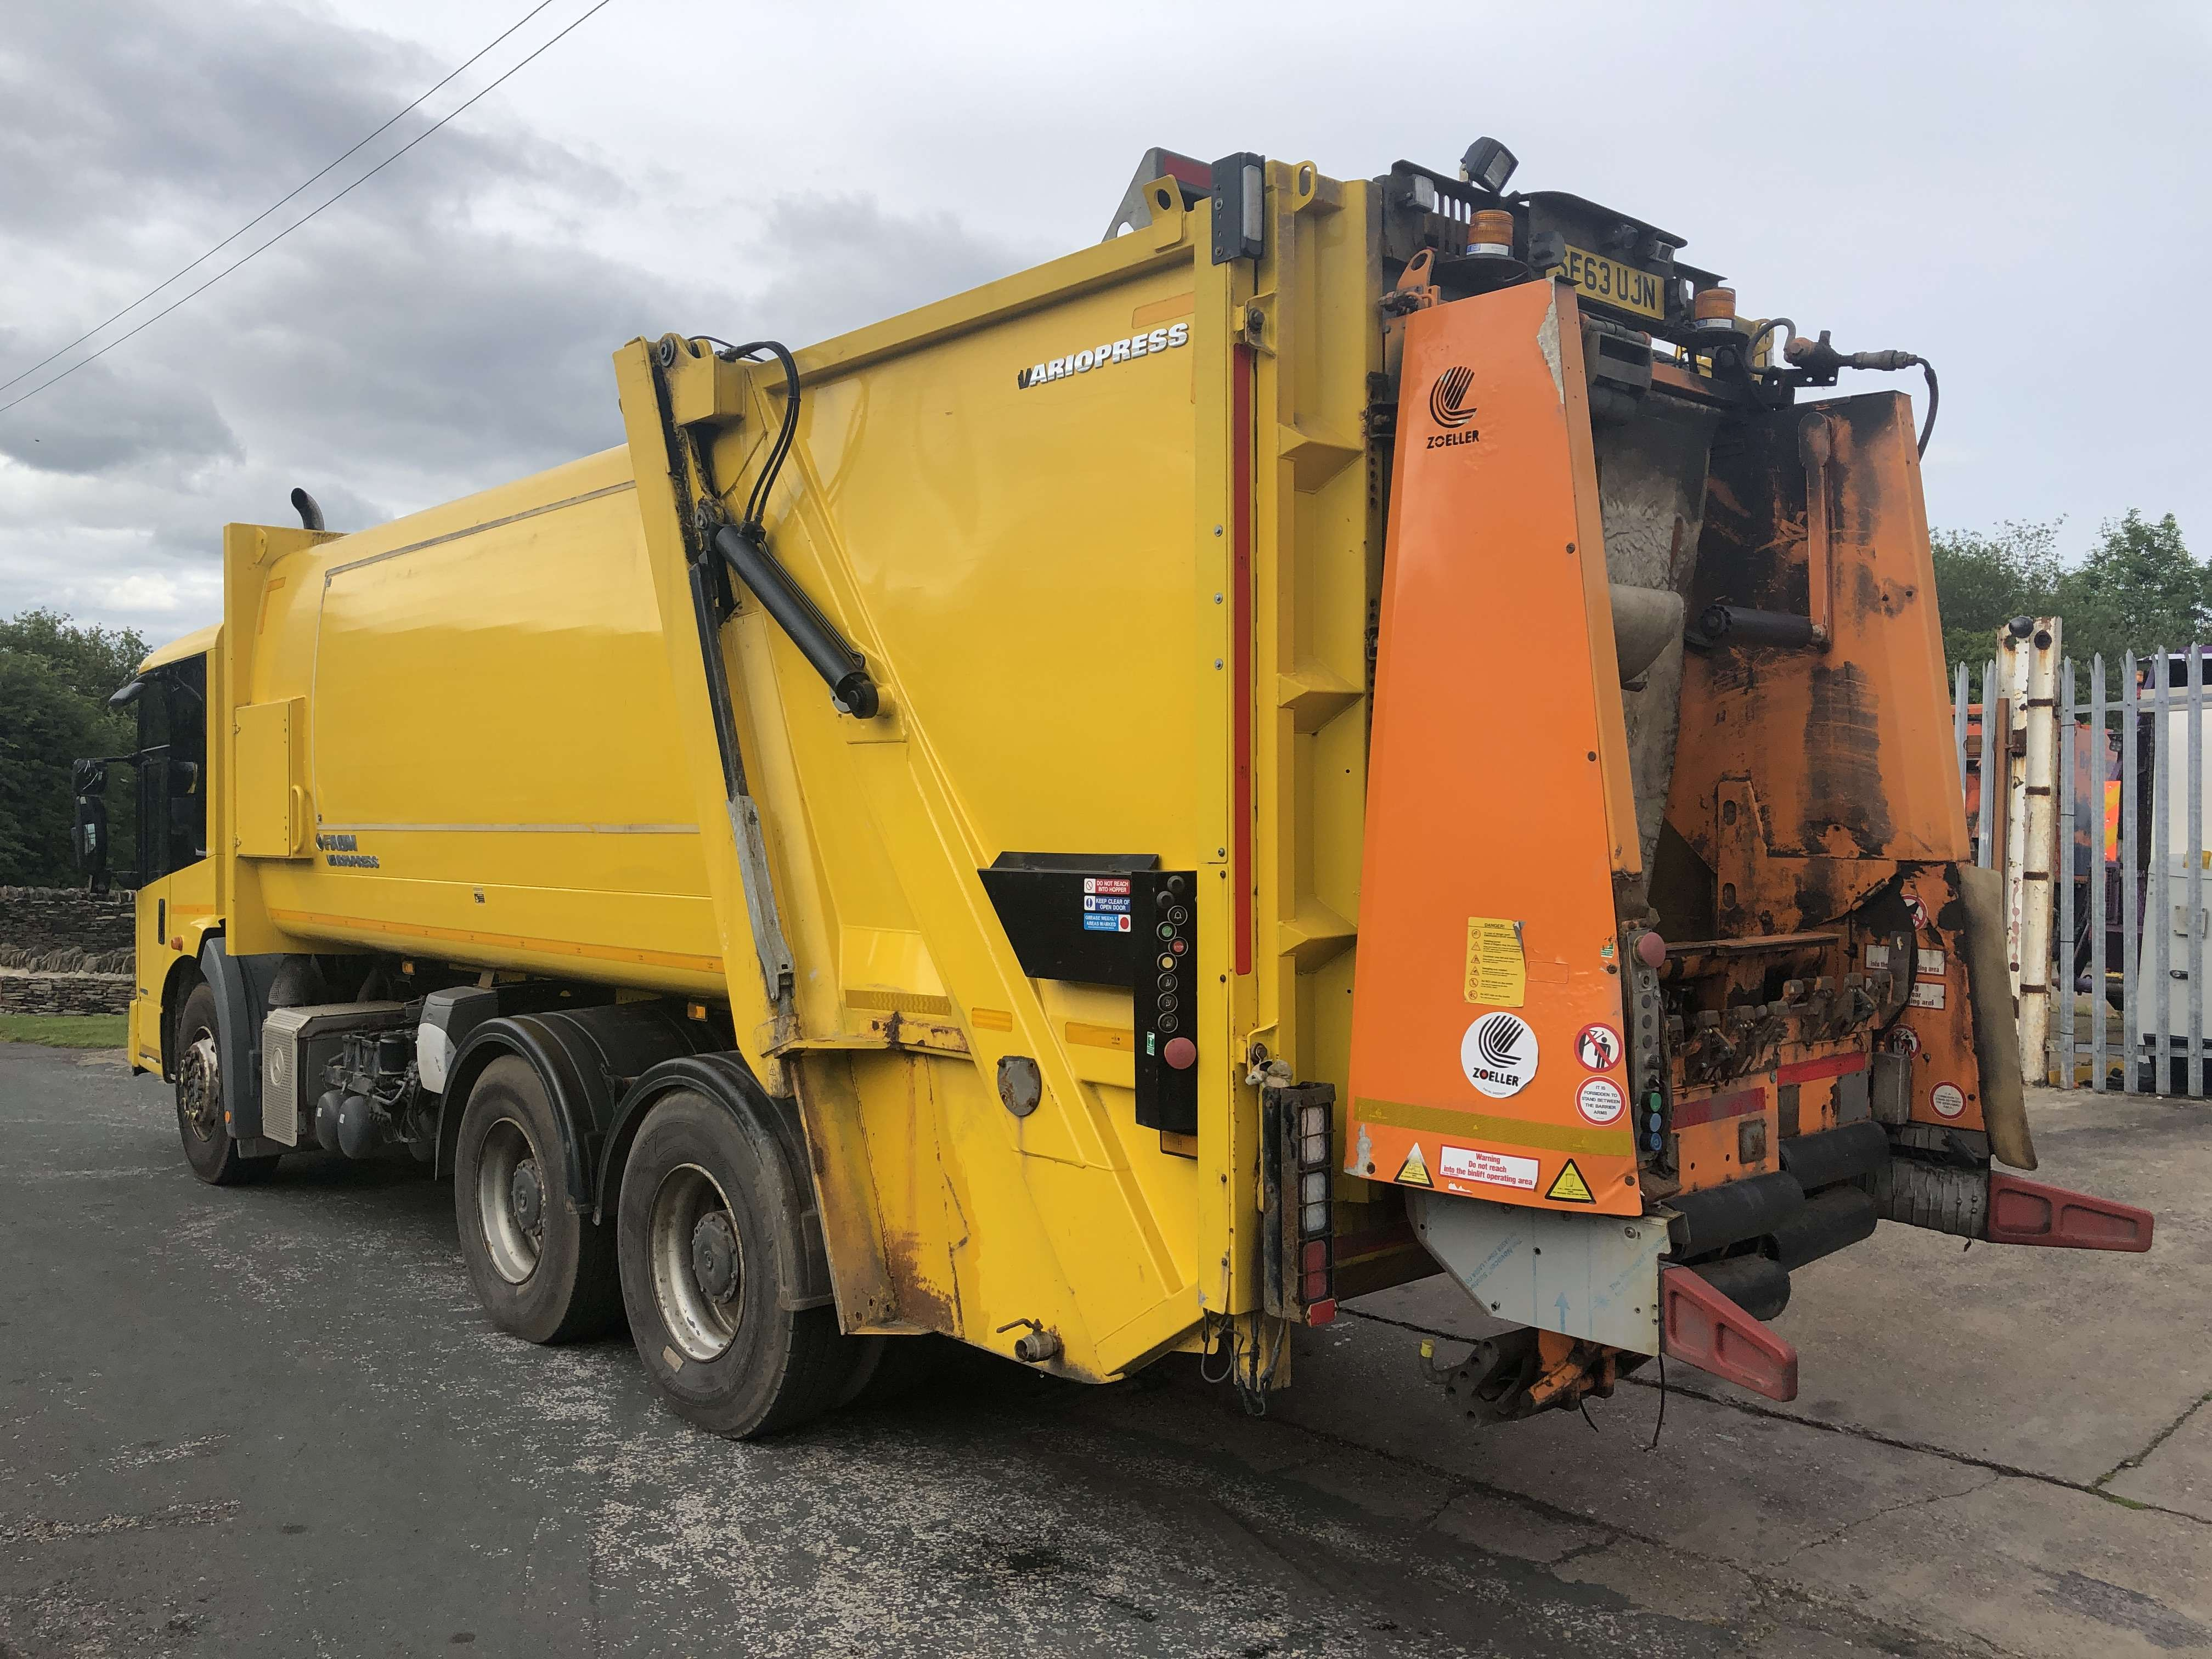 2013 Mercedes Econic refuse truck for sale 2